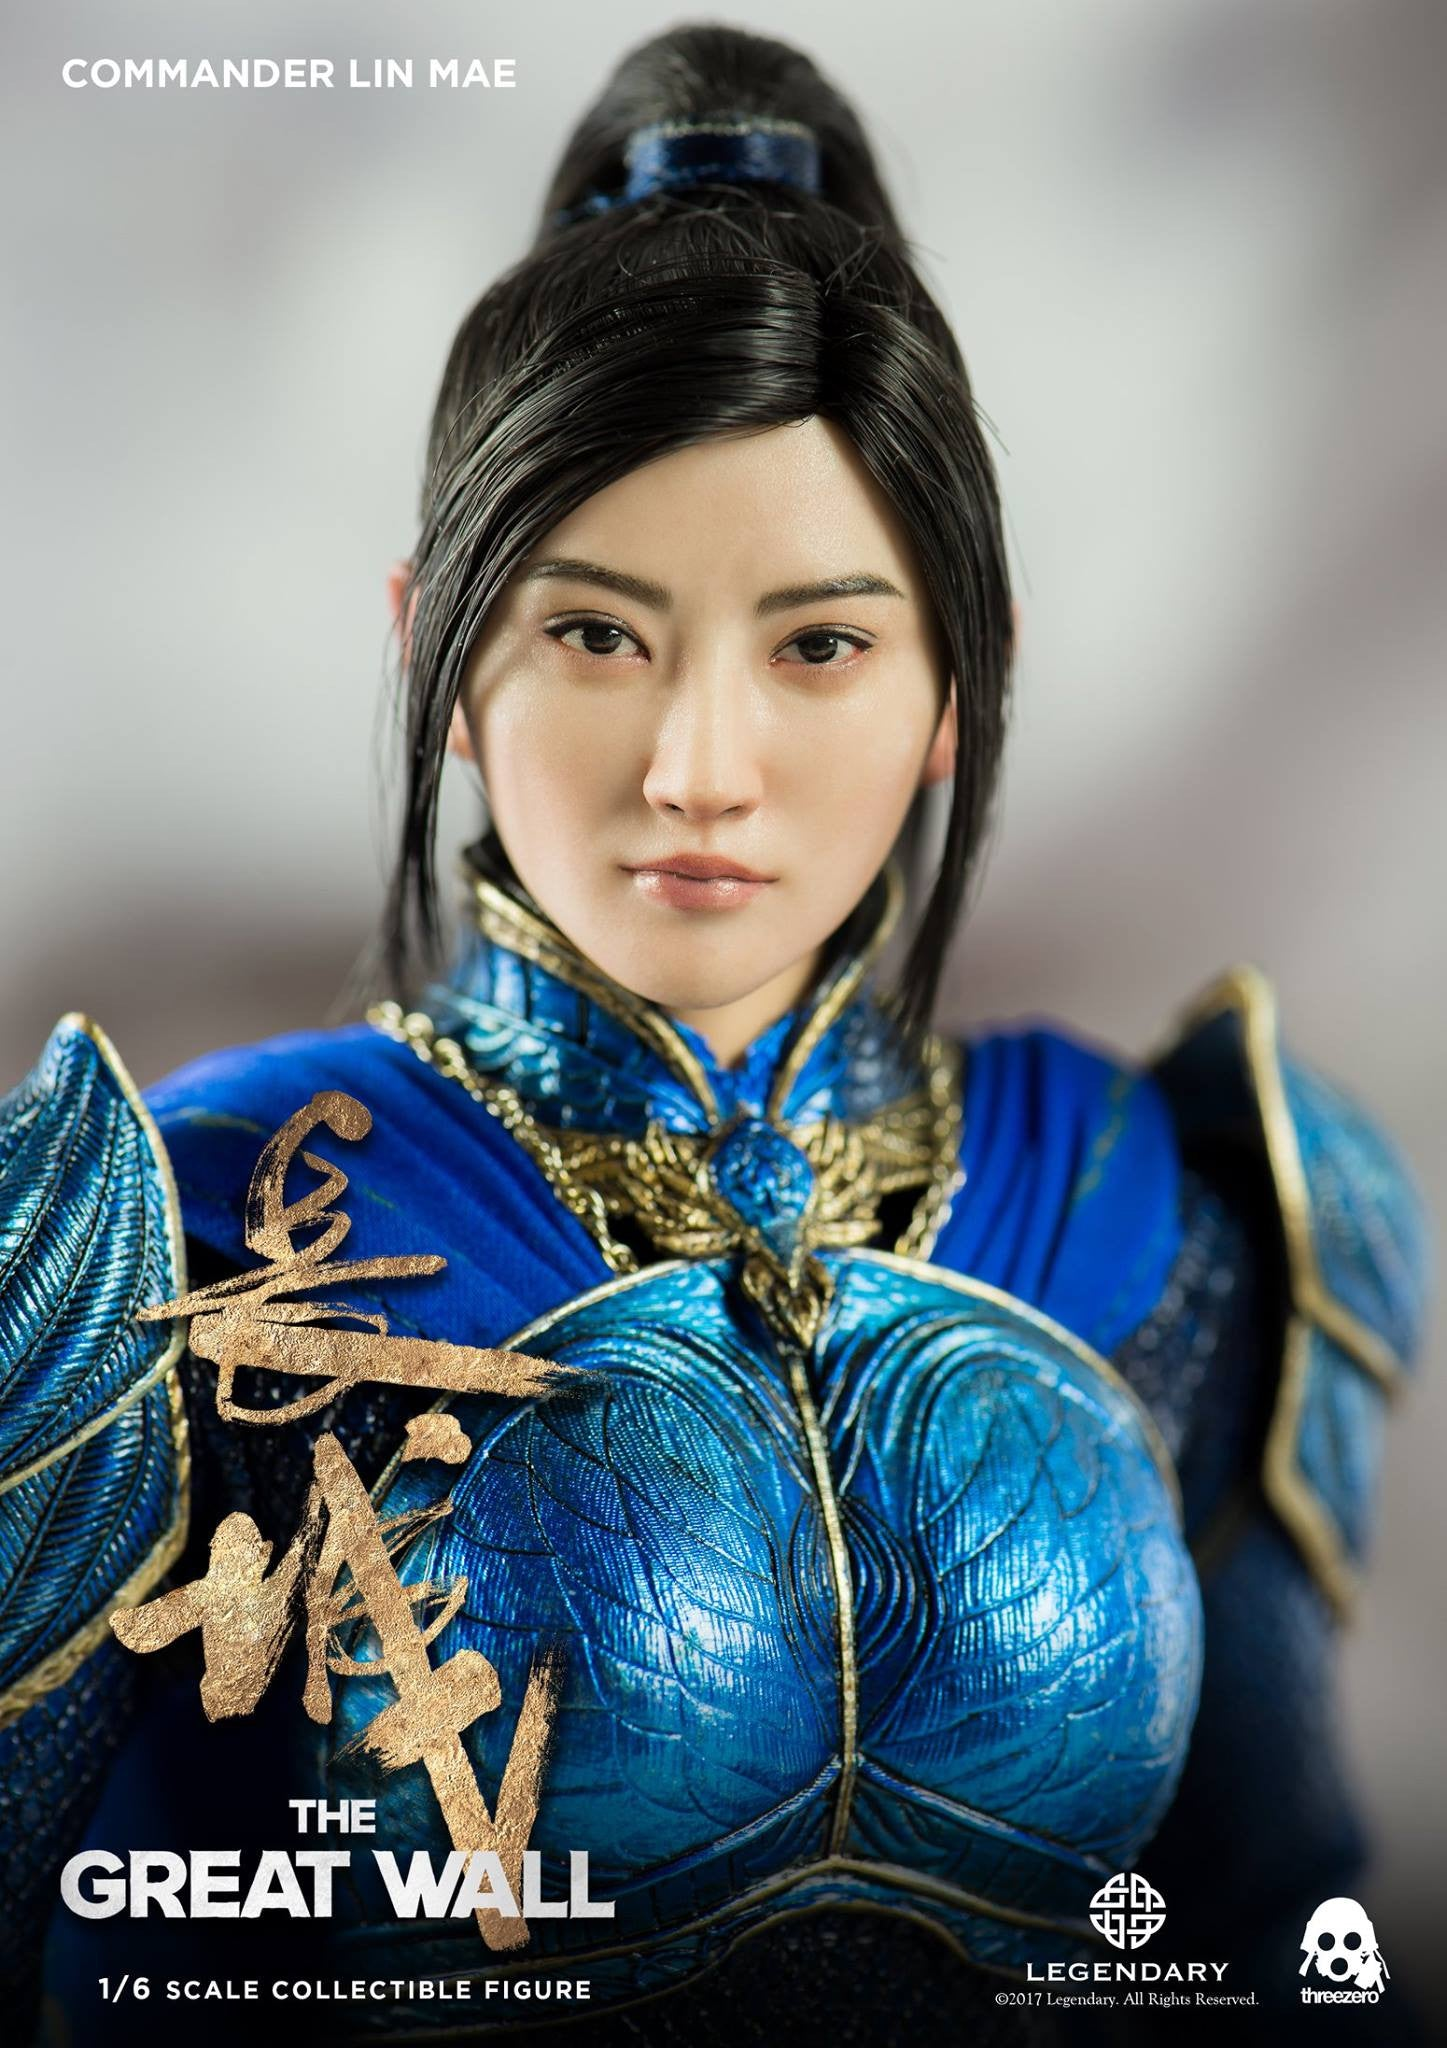 ThreeZero - The Great Wall - Commander Lin Mae 长城 鹤军将领 林梅 景甜 (1/6 Scale)